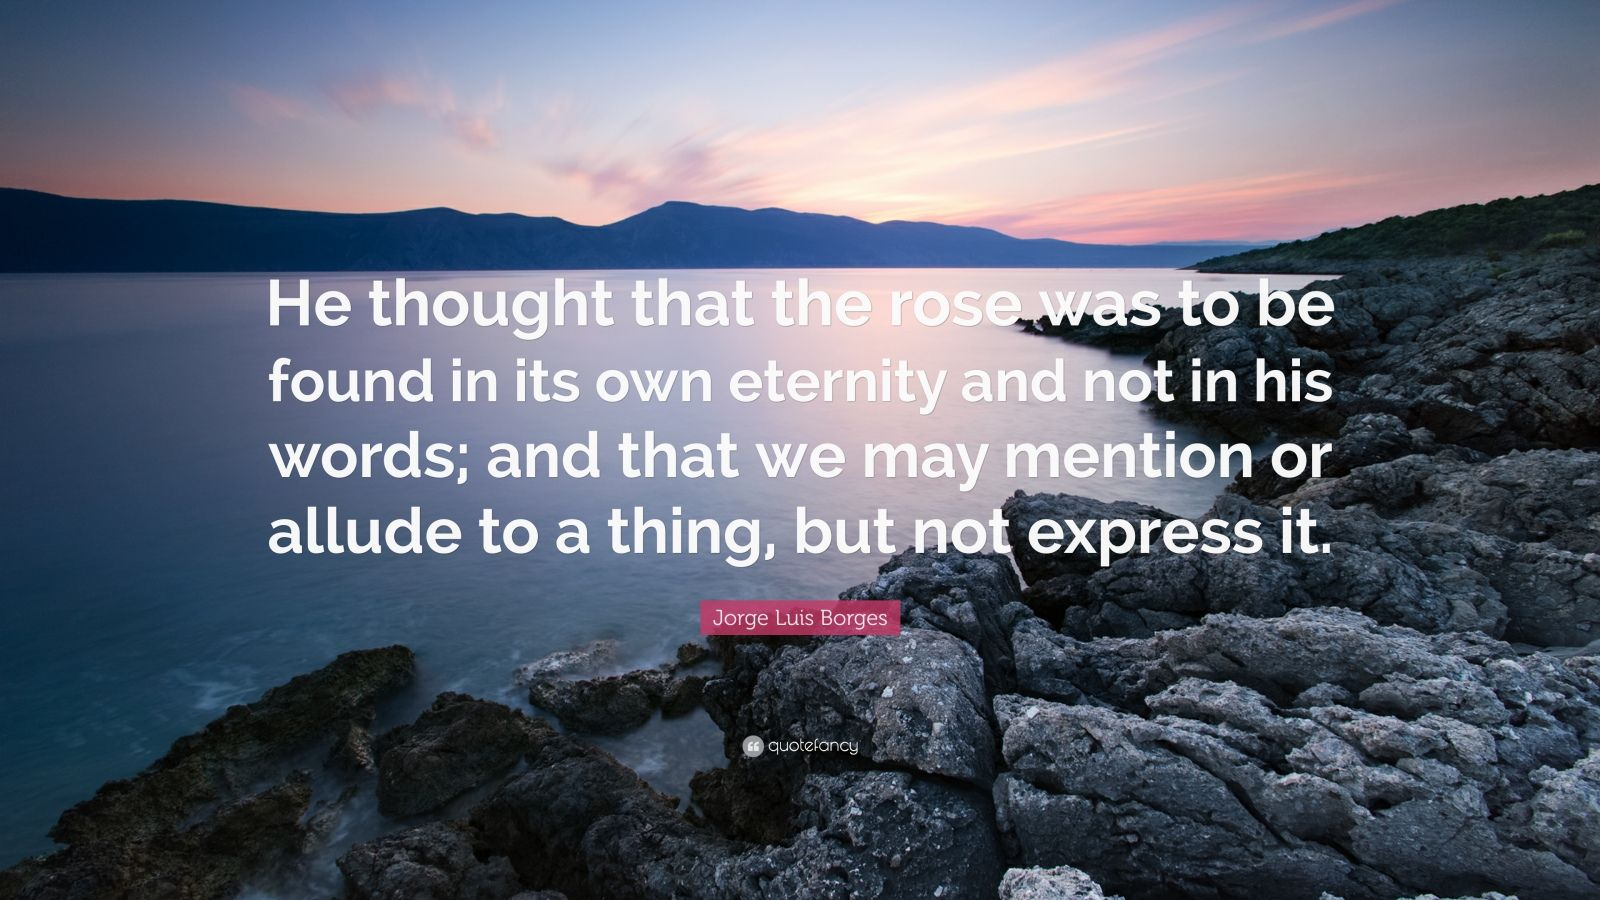 """Jorge Luis Borges Quote: """"He thought that the rose was to be found in its own eternity and not in his words; and that we may mention or allude to a thing, but not express it."""""""